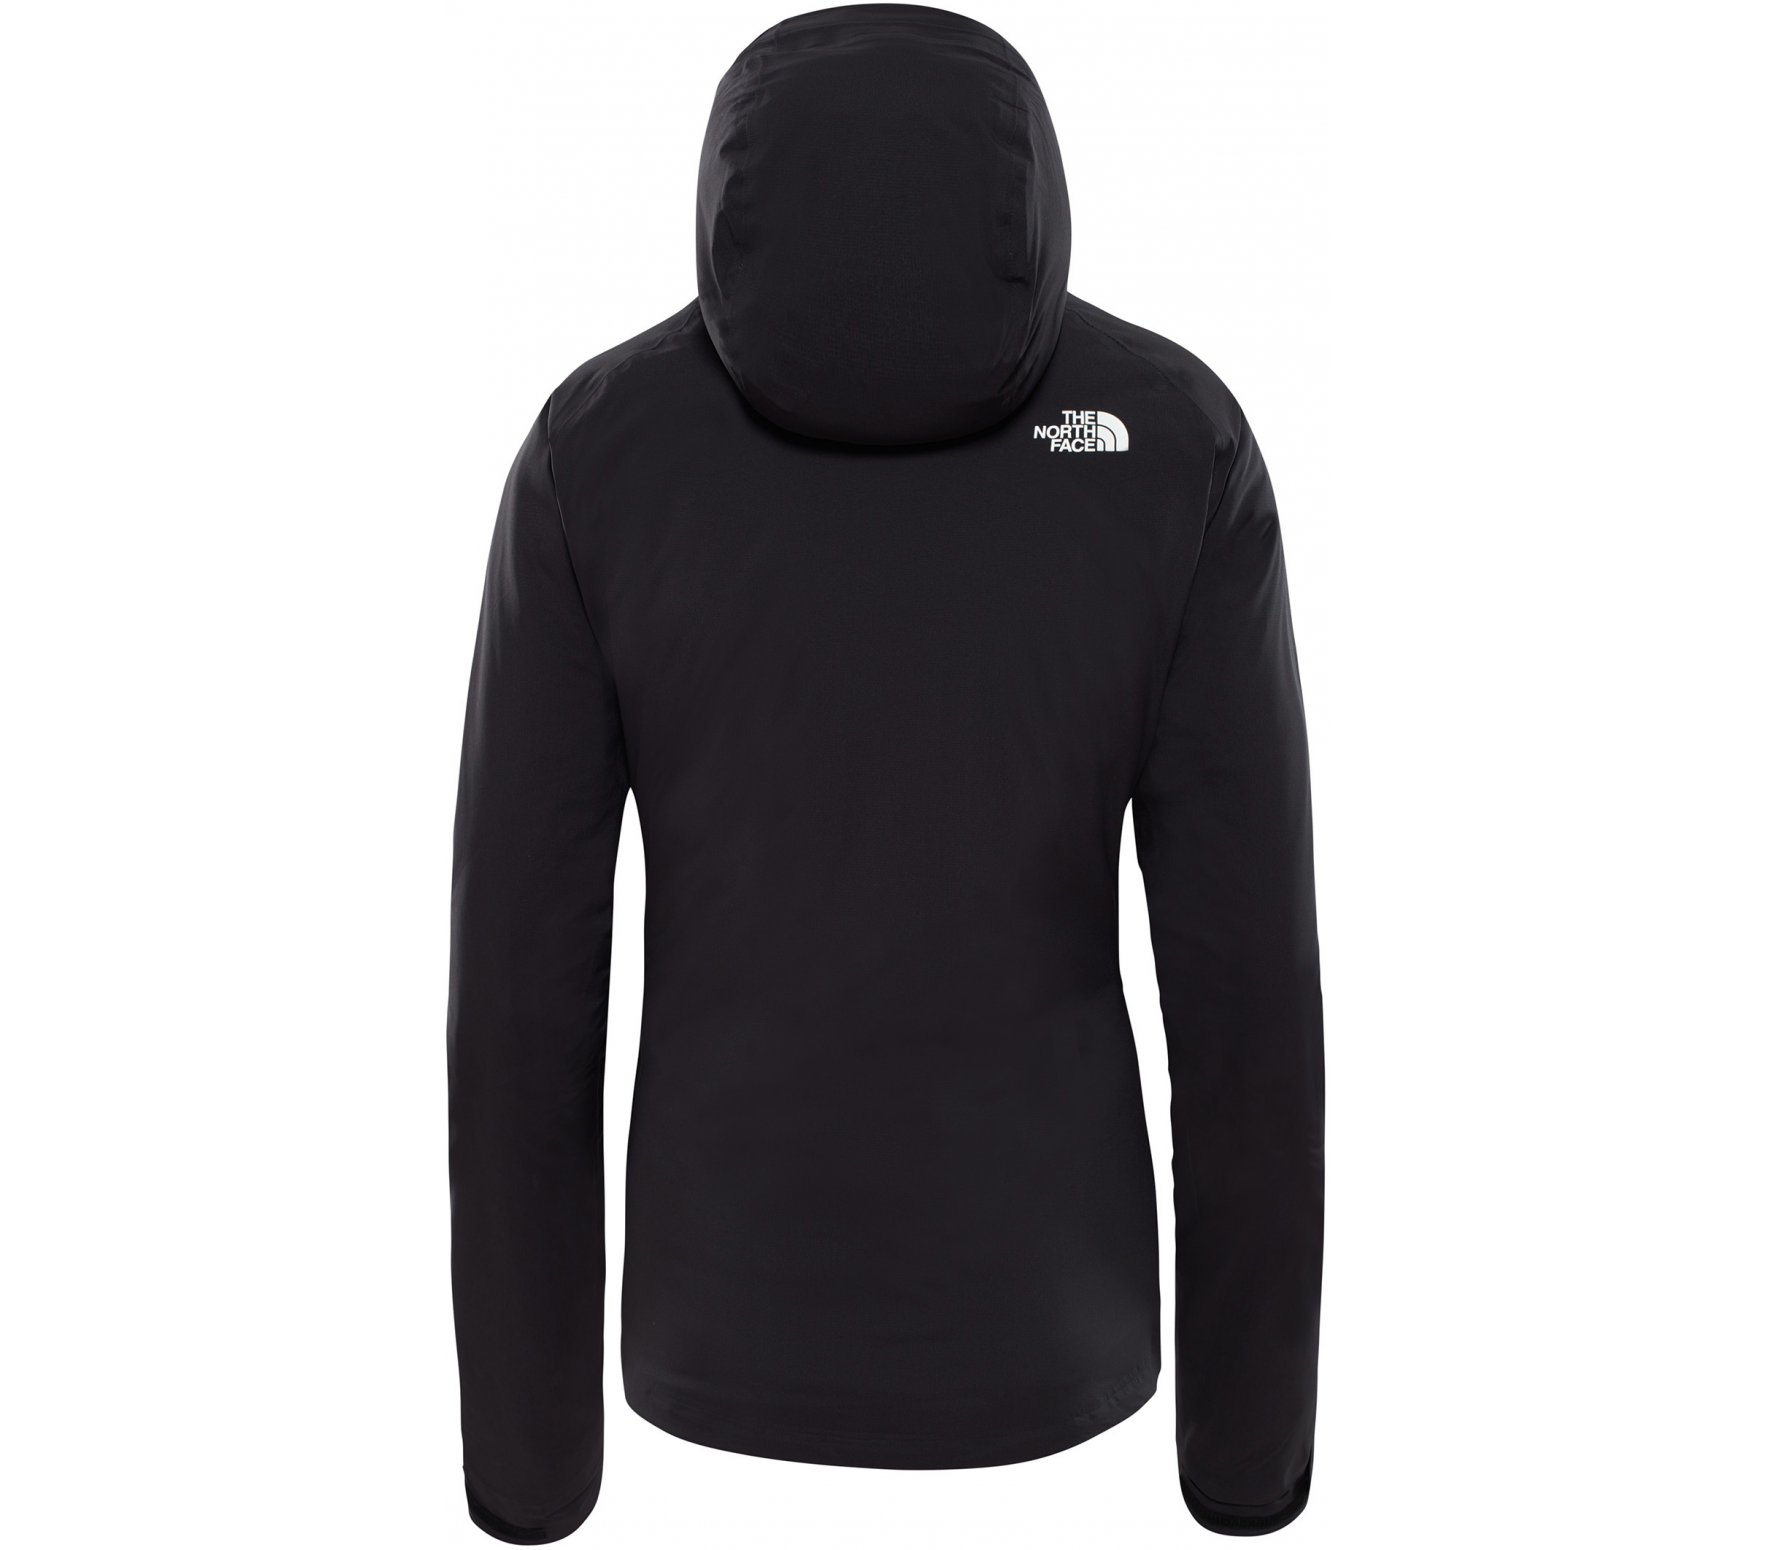 c0876ae49 The North Face - Impendor Insulated women's outdoor jacket (black)